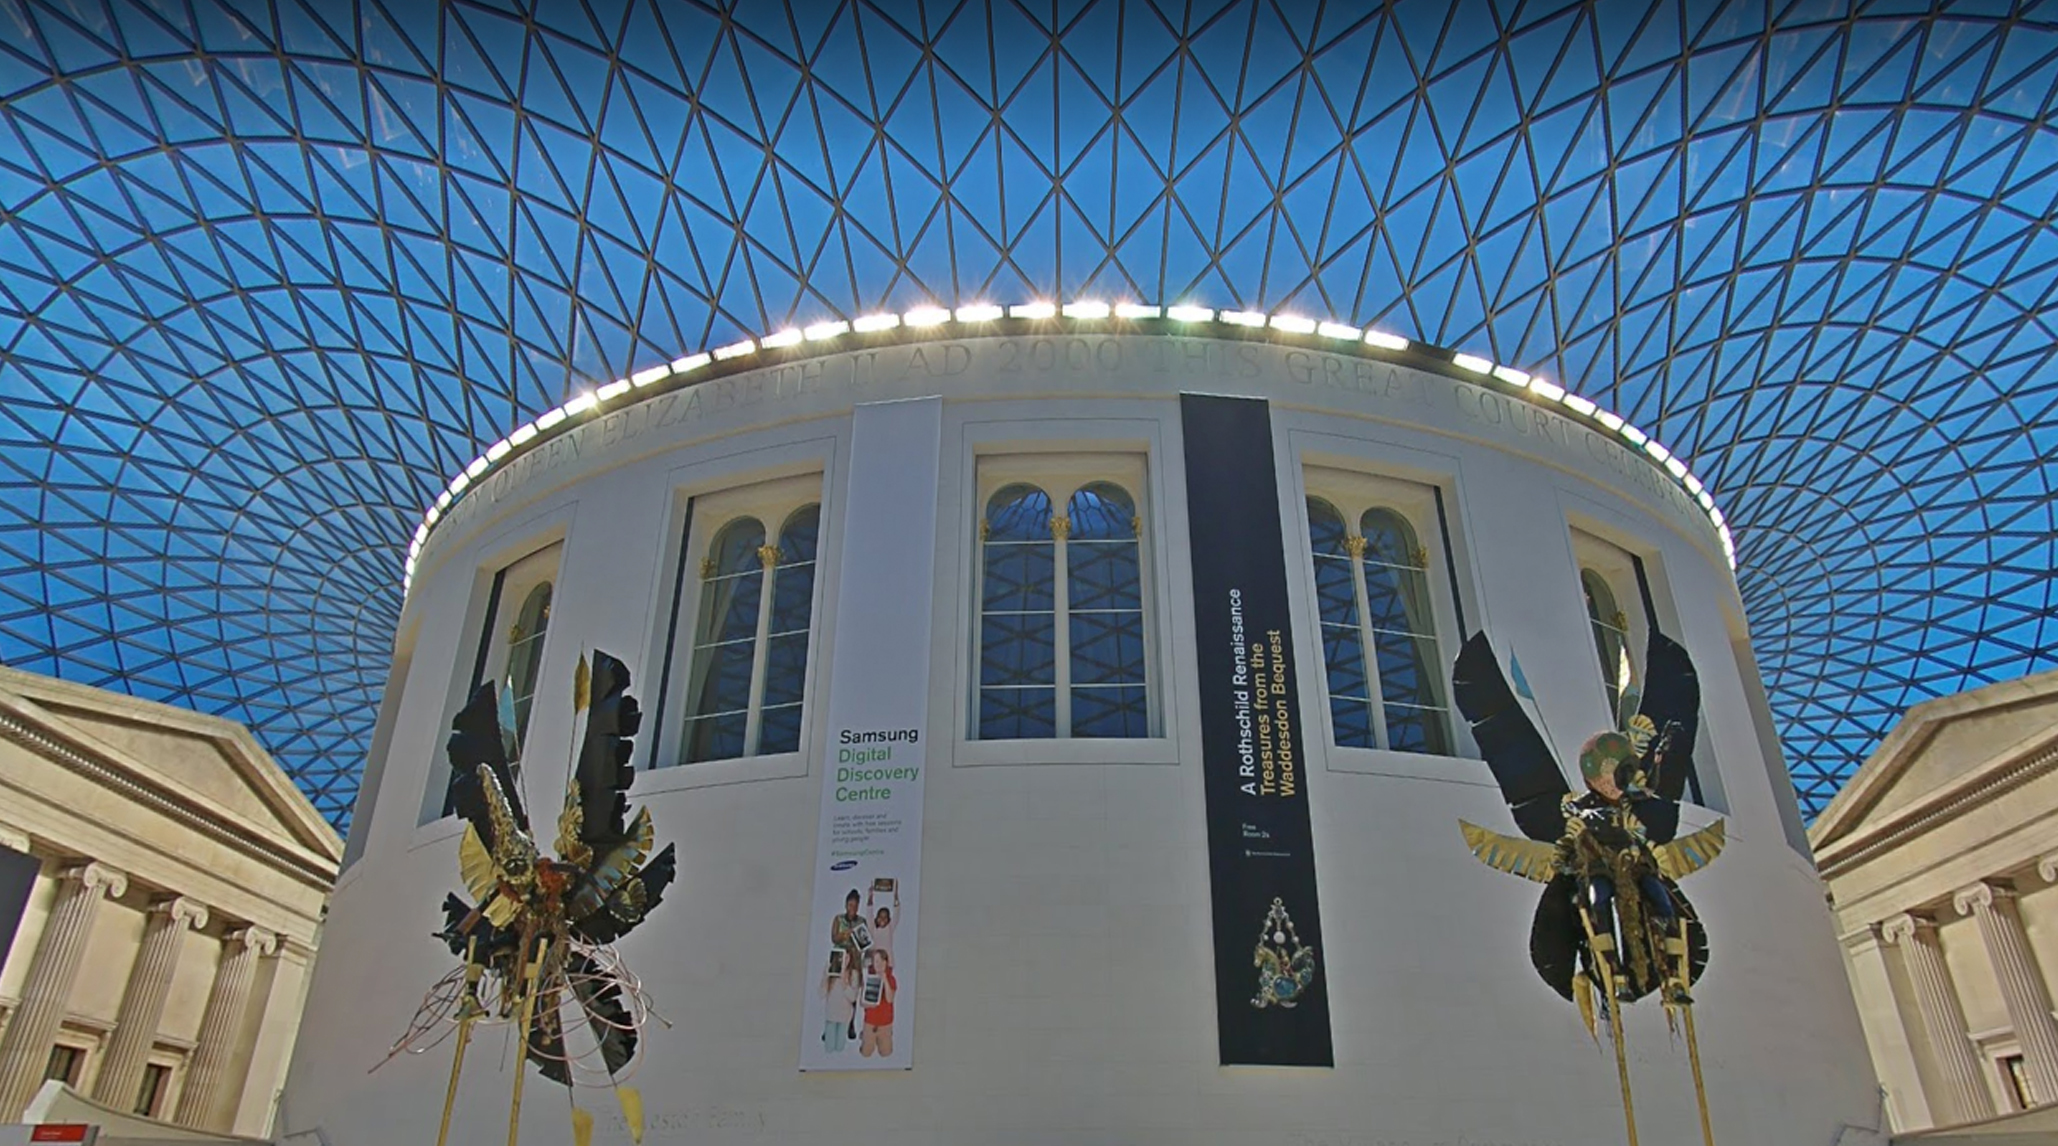 Virtual tours of almost every major London museum